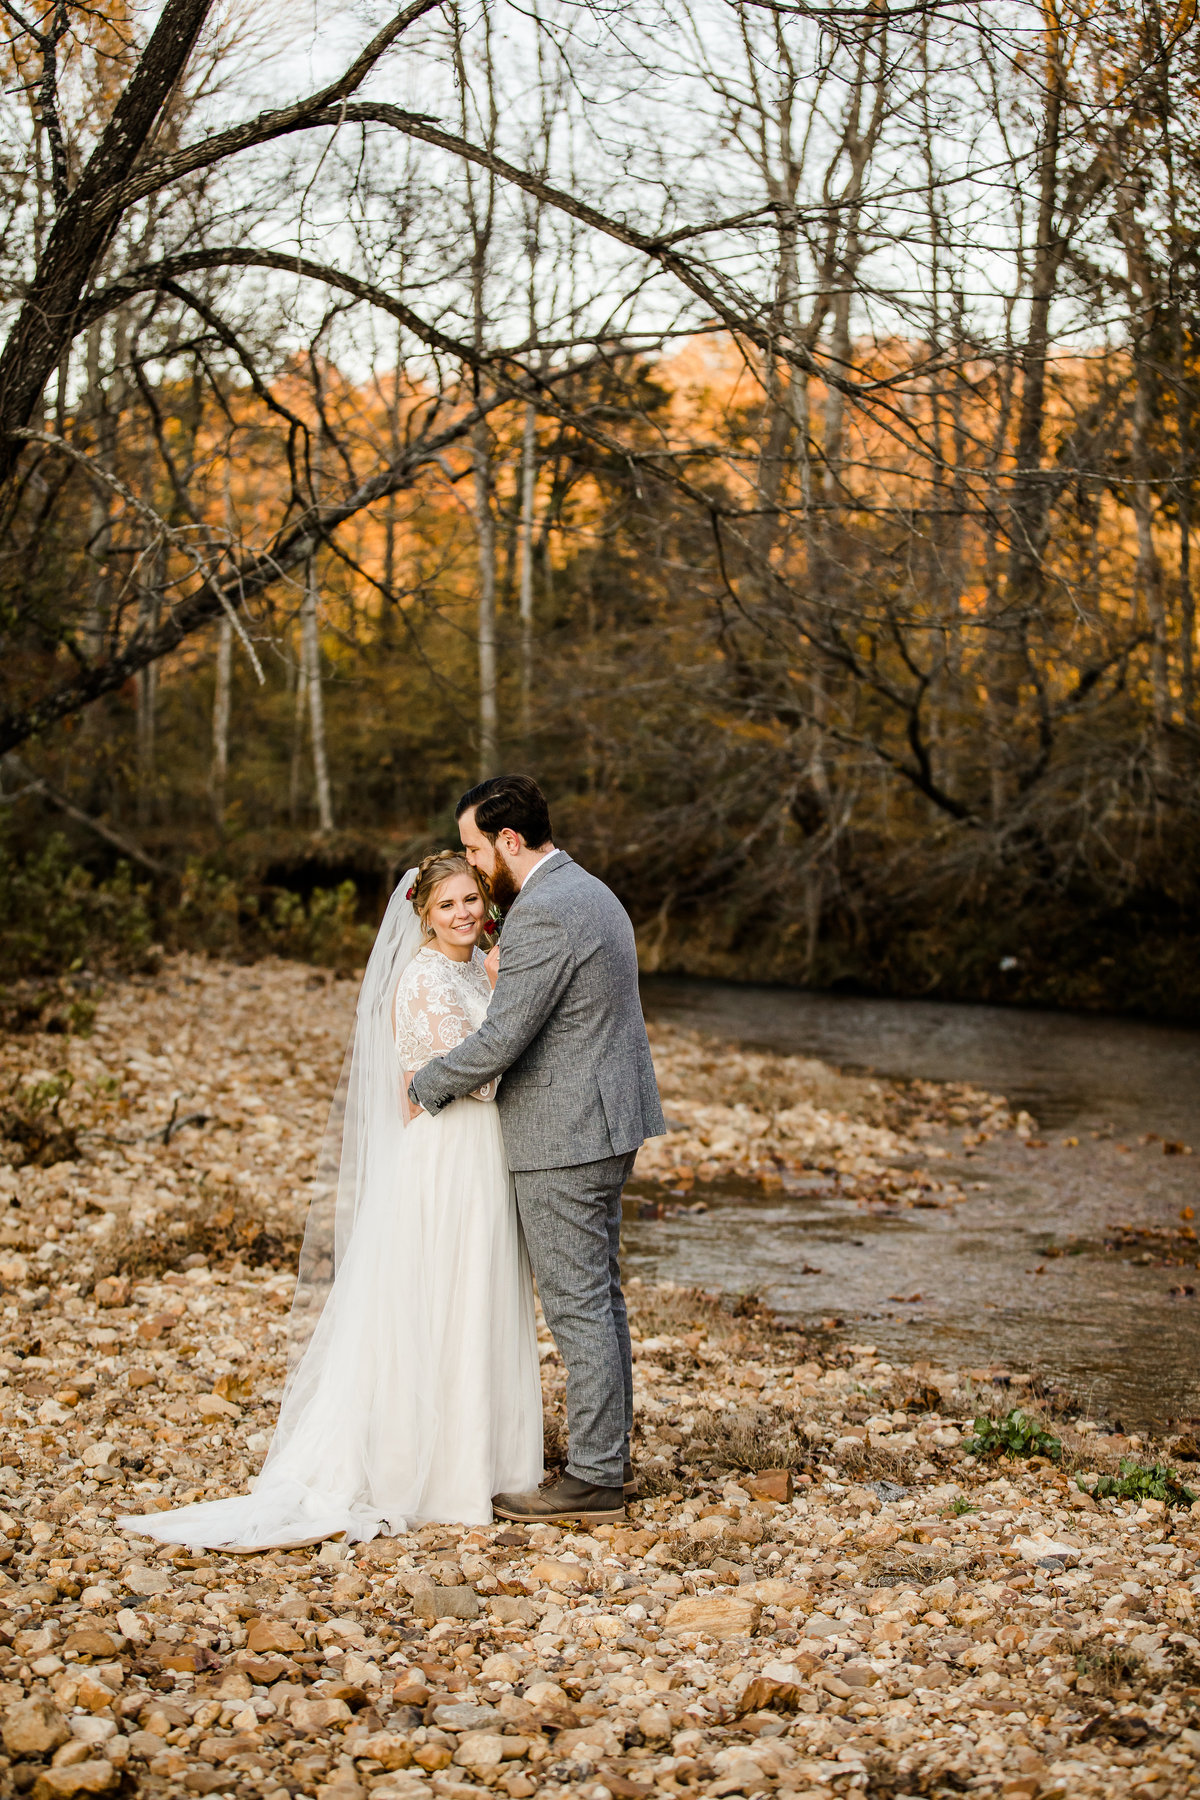 Cactus Creek Barn - Dickson Wedding - Dickson TN - Outdoor Weddings - Outdoor Wedding - Nashville Wedding - Nashville Weddings - Nashville Wedding Photographer - Nashville Wedding Photographers139